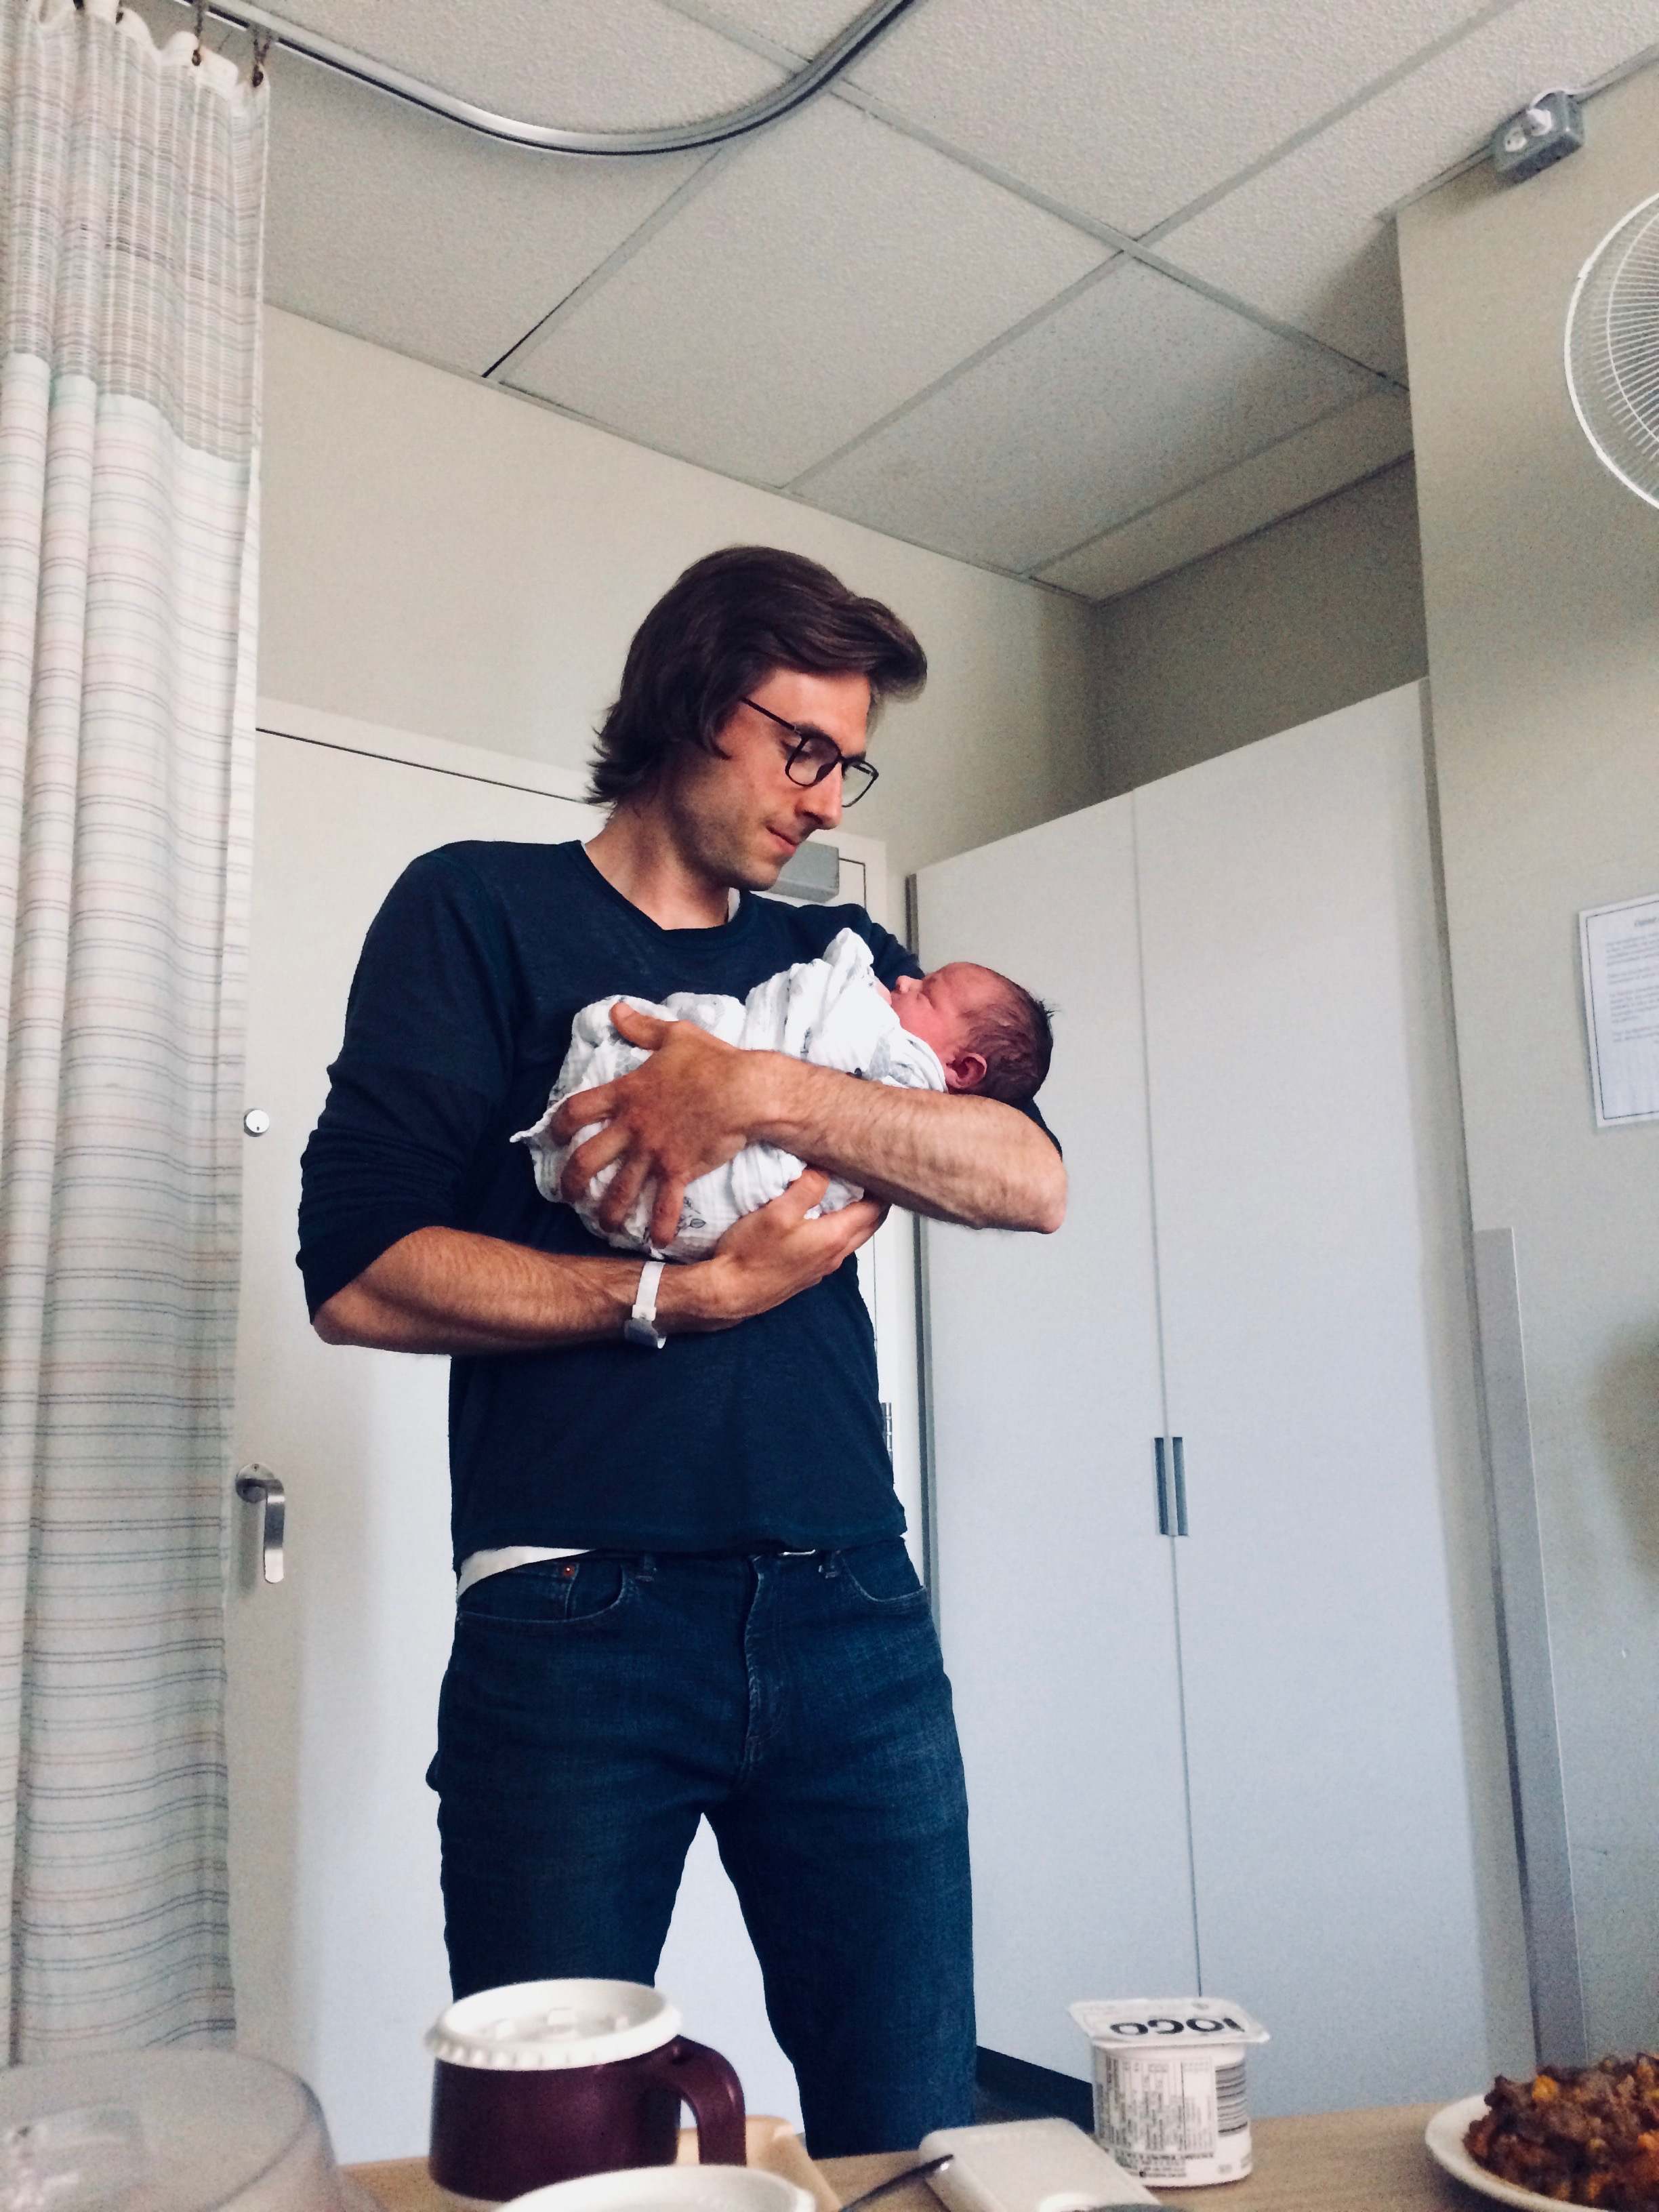 """One of the very first father-son moments! (and in the corner is a really yummy casserole friends prepared for us - thanks Jérémie & Audrey!! definitely way better than the """"beef surprise"""" hospital food. ;)"""